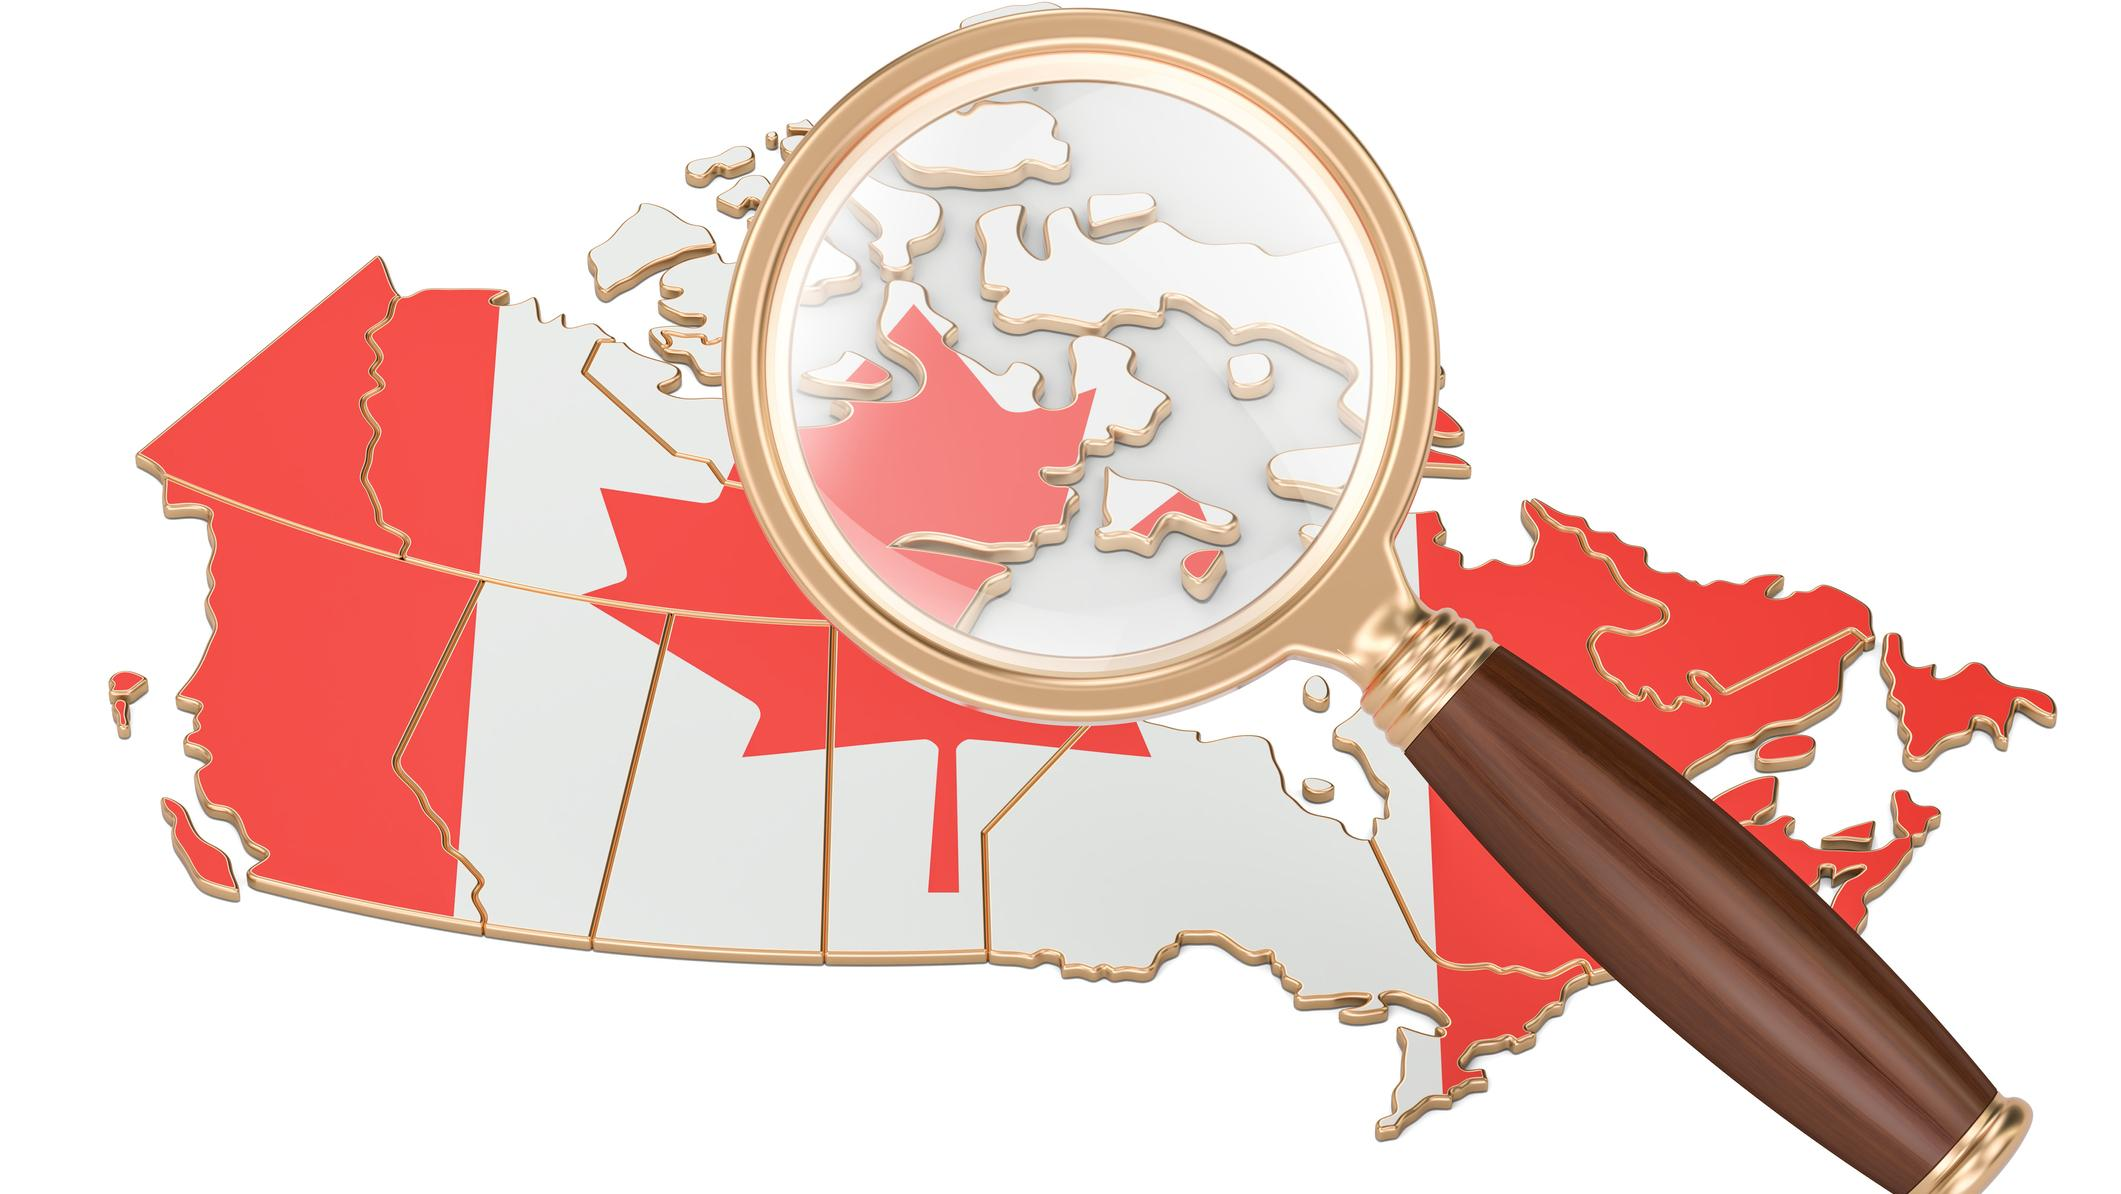 Canada under Magnifying Glass